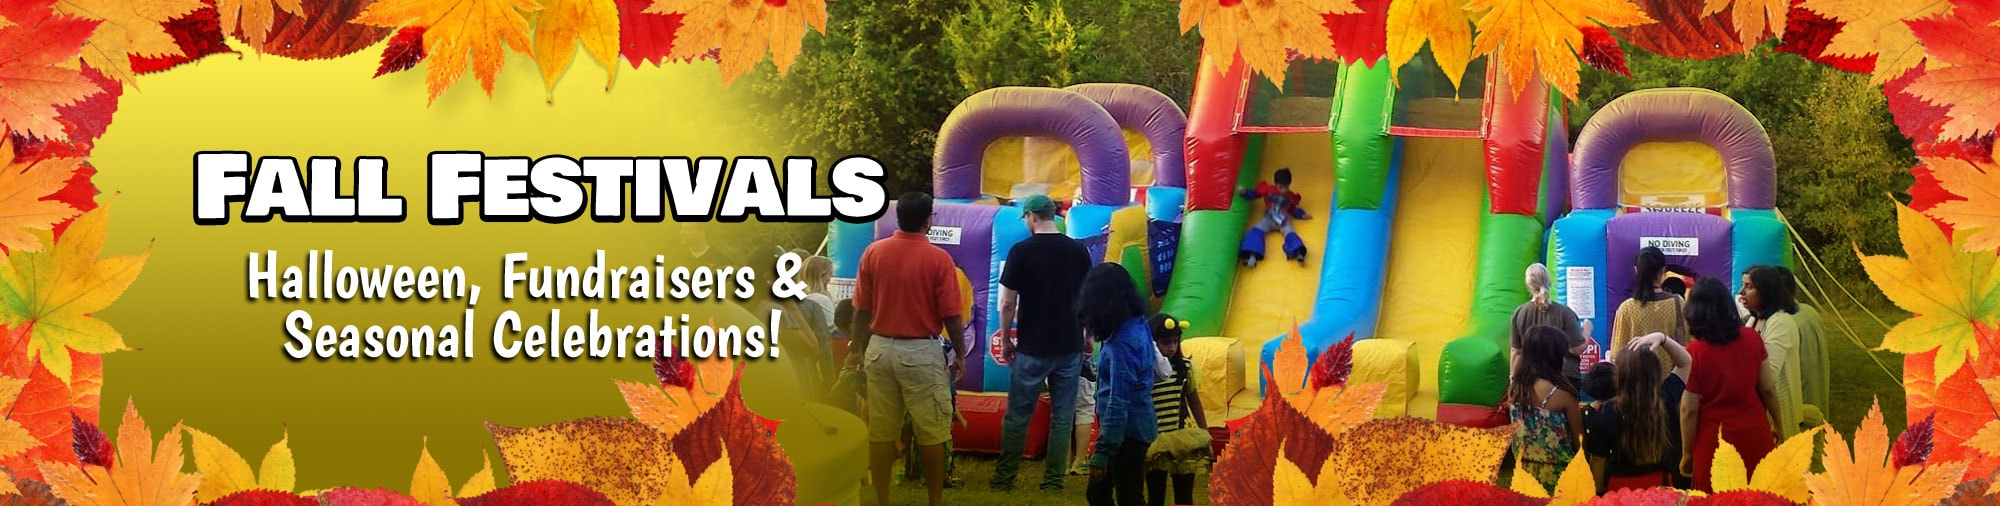 Bounce House Amp Party Rentals Collegestationbounce Com